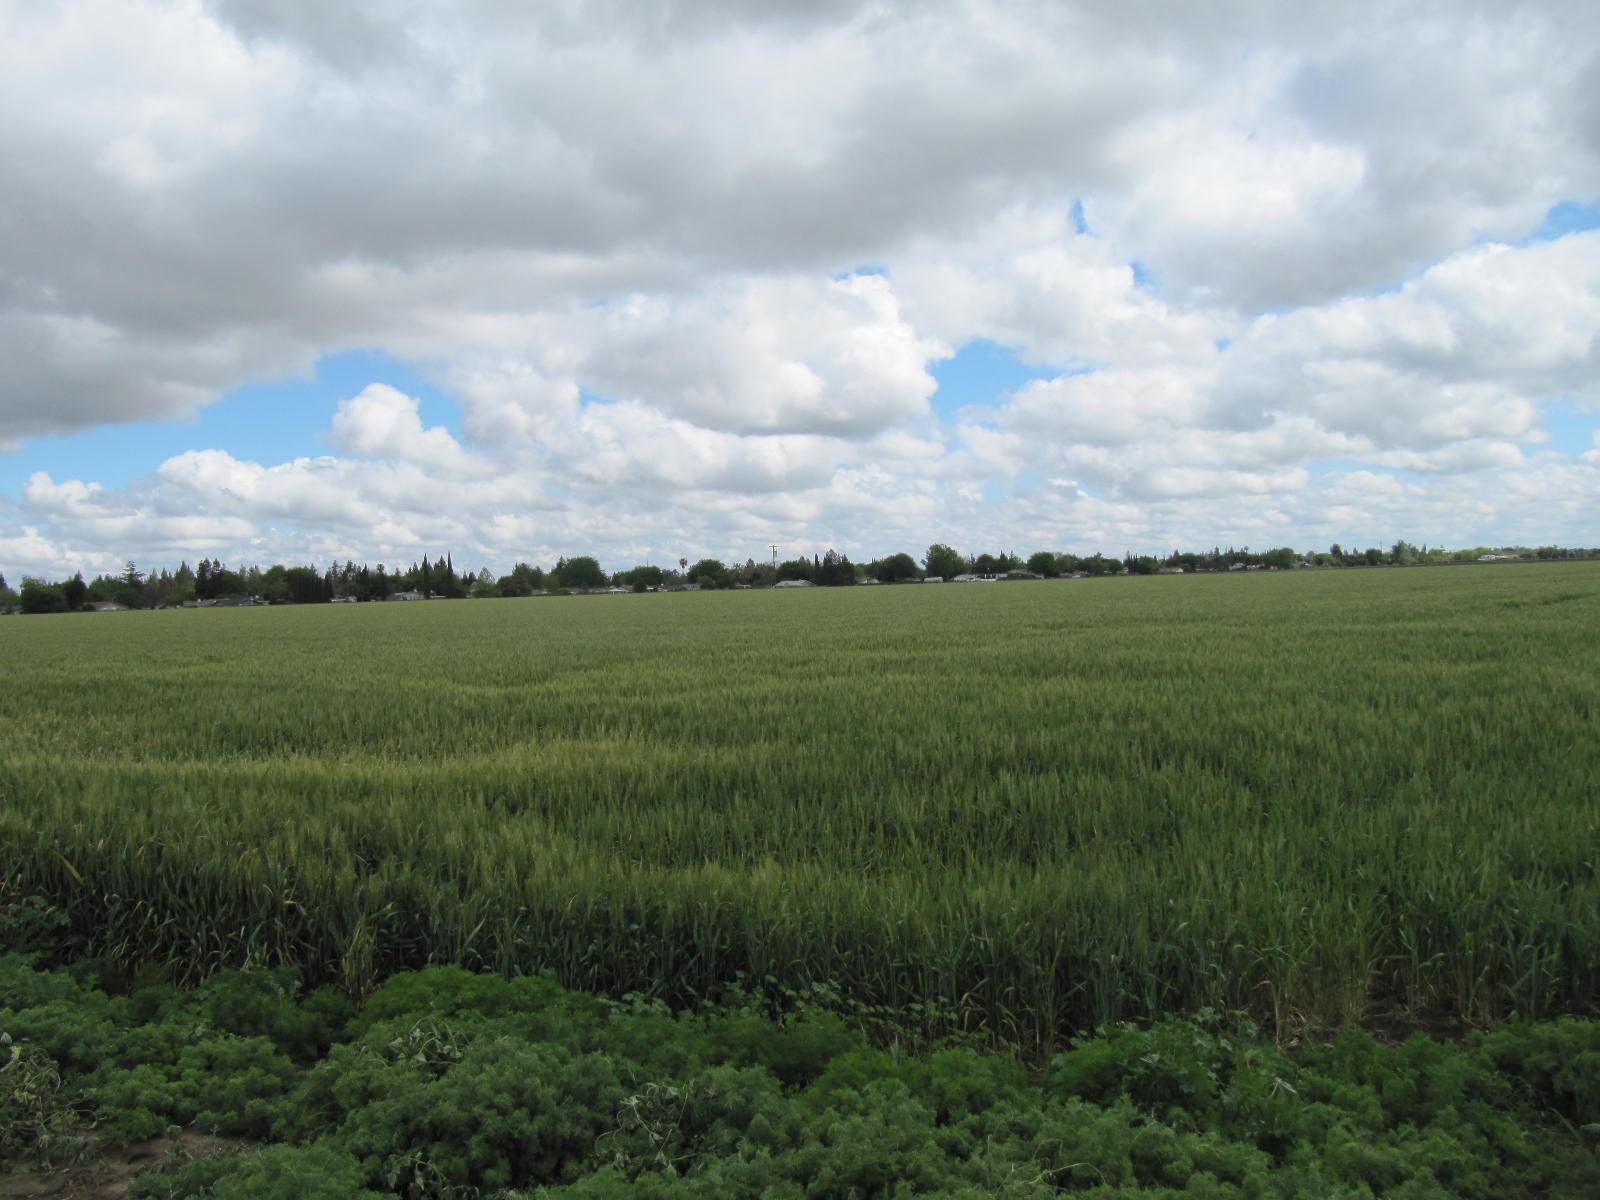 Great 40 acres farm land in Northern CA with Class 1 Soil